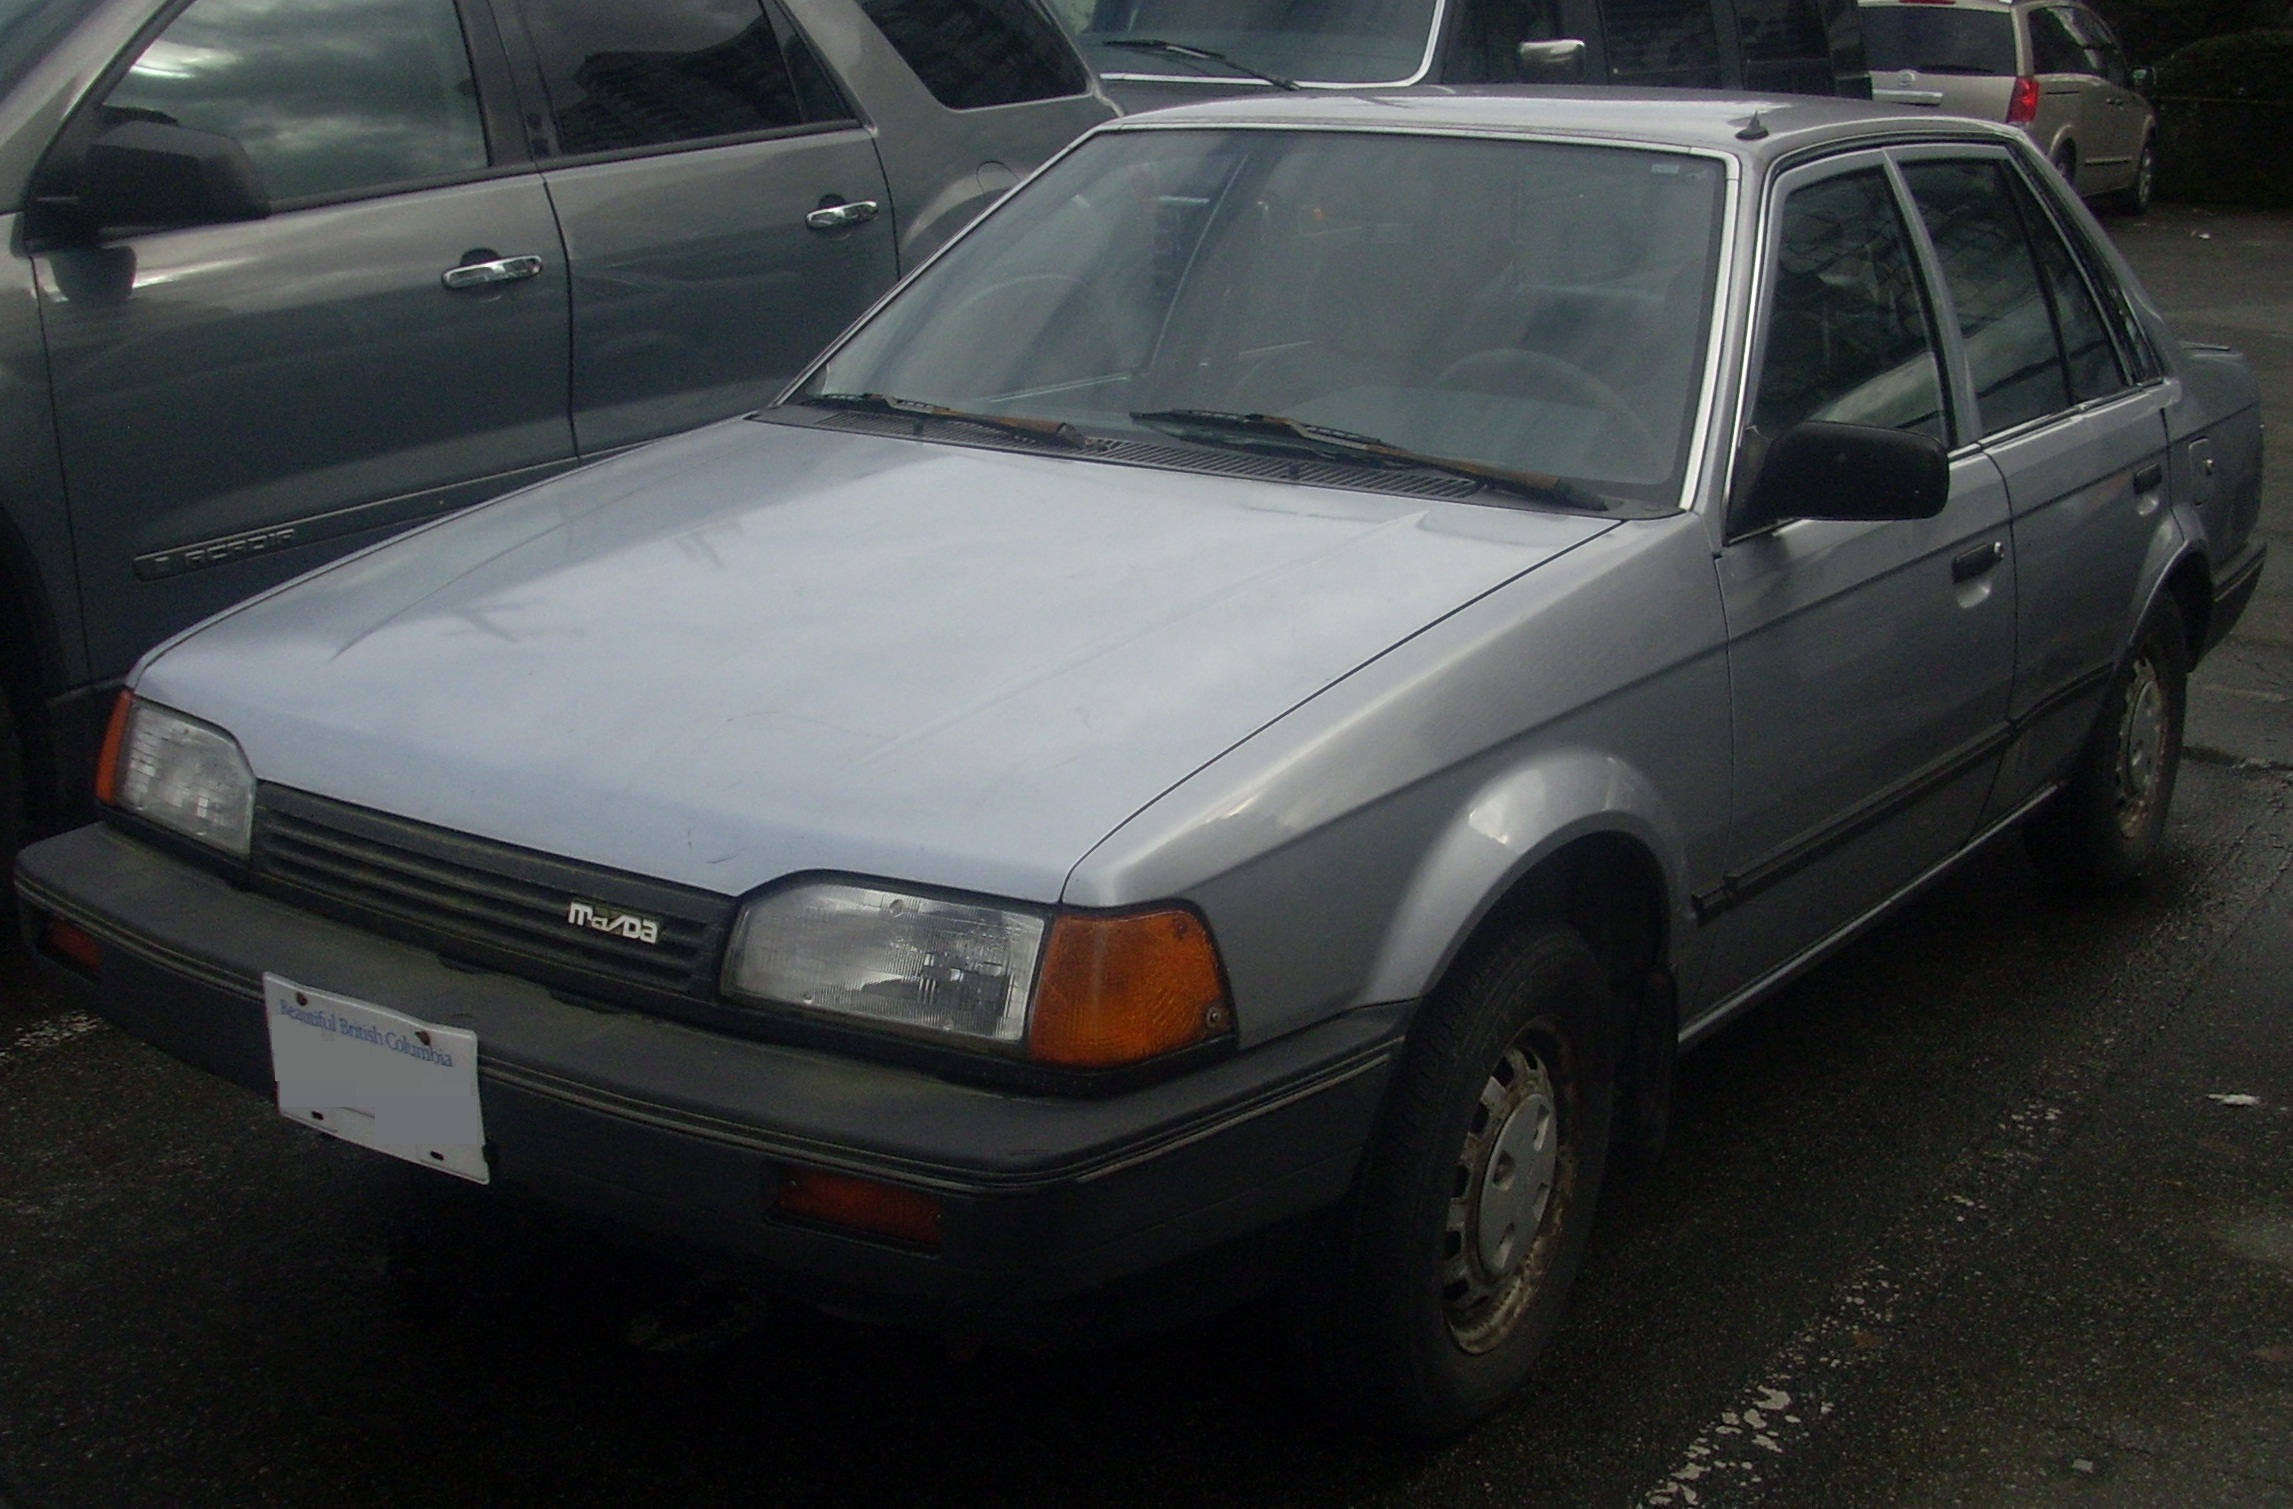 File:'88-'89 Mazda 323 Sedan.jpg - Wikimedia Commons